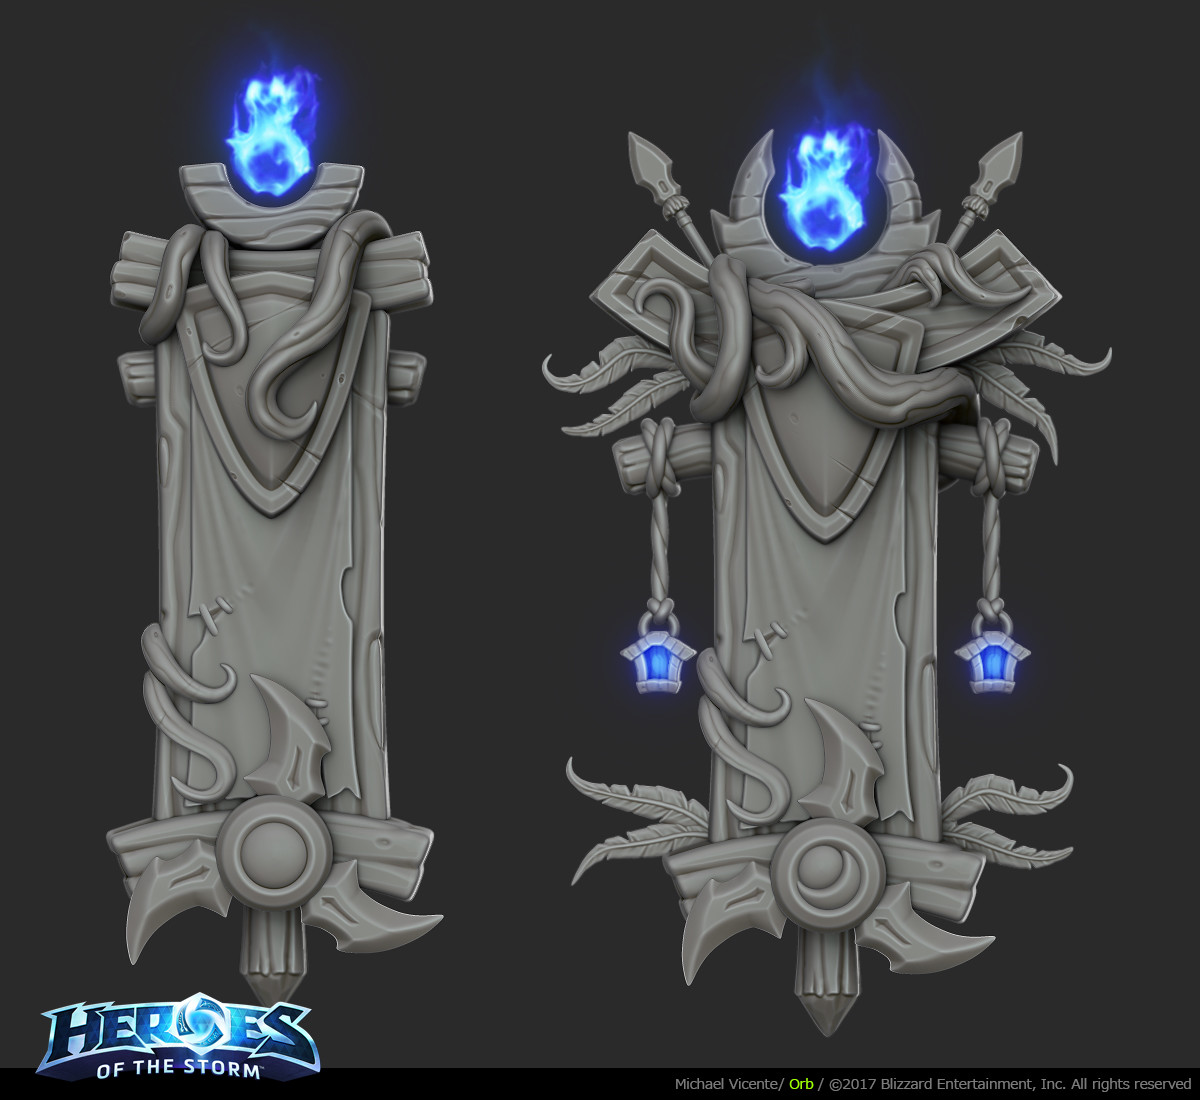 Orb - Heroes of The Storm Art Dump - Page 4